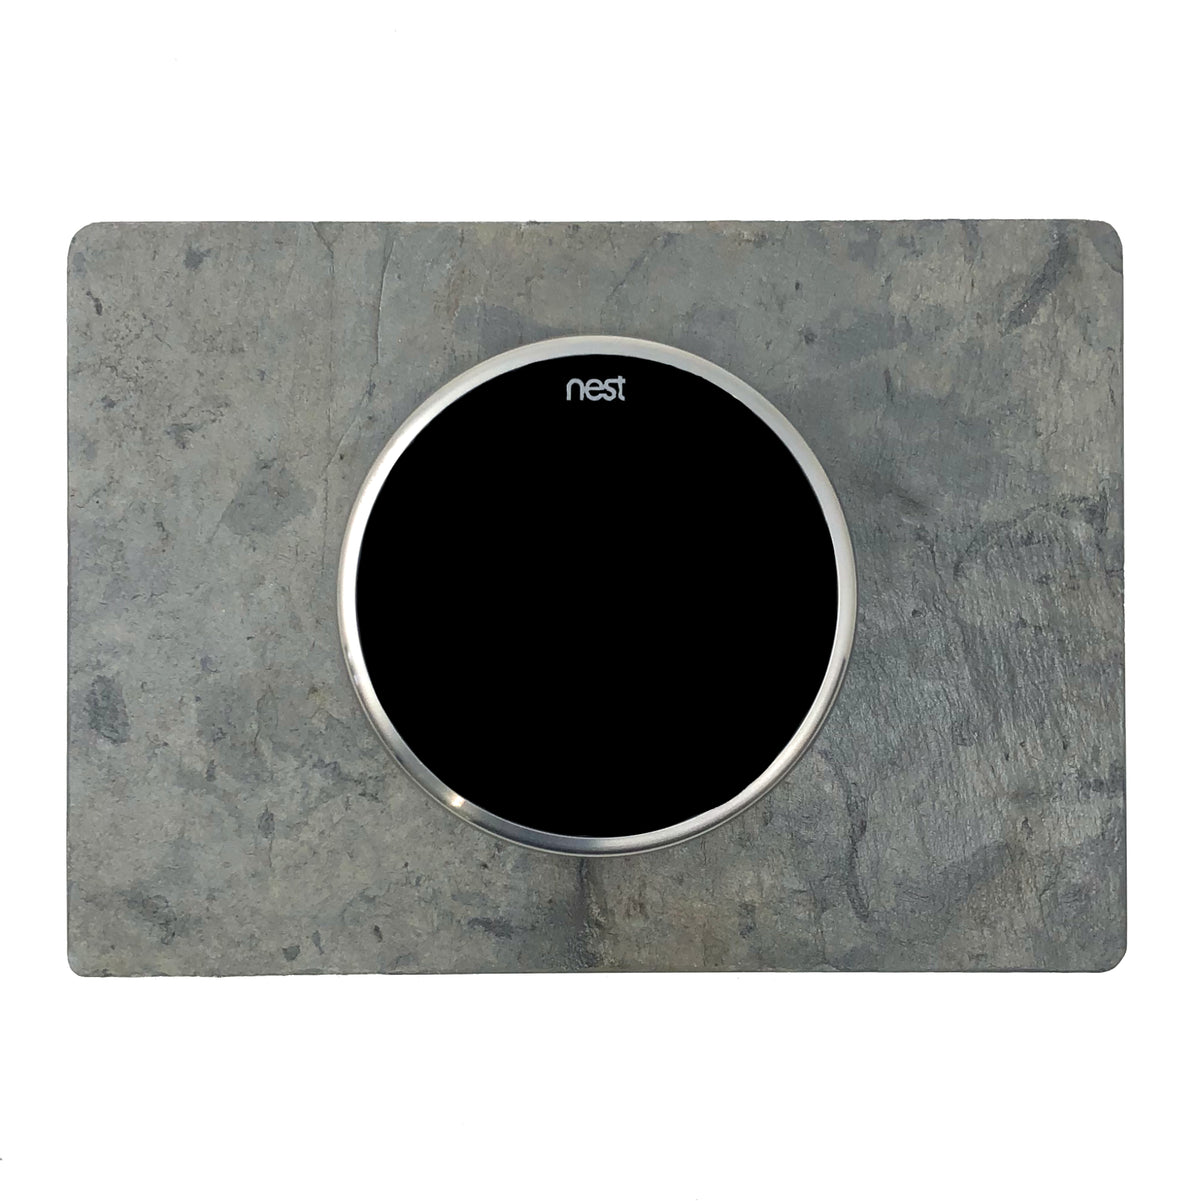 Nest Wall Plate 7 x 5 Inches Rectangle Gray Slate Stone